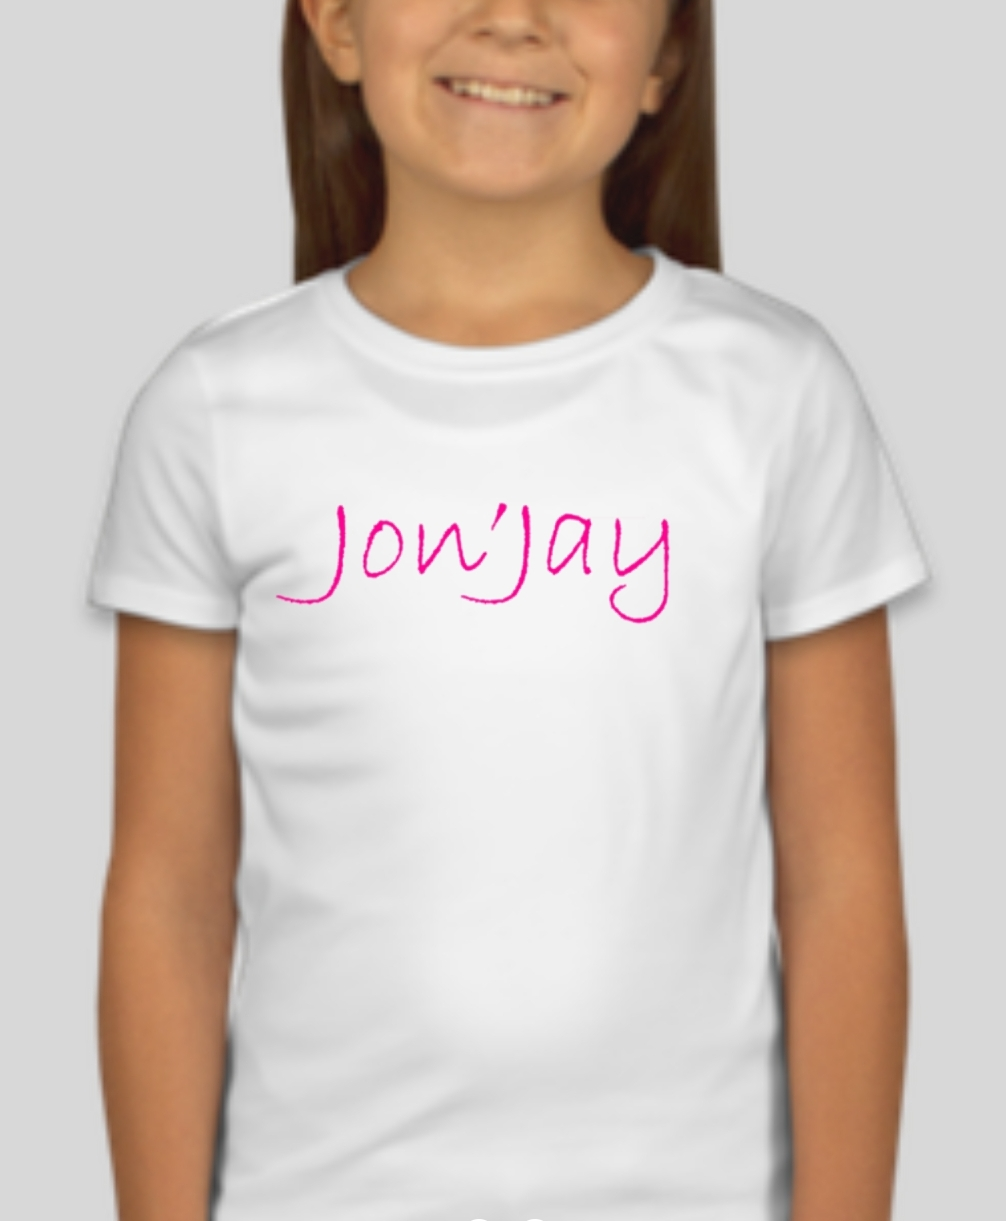 Jon'Jay Girls white tee